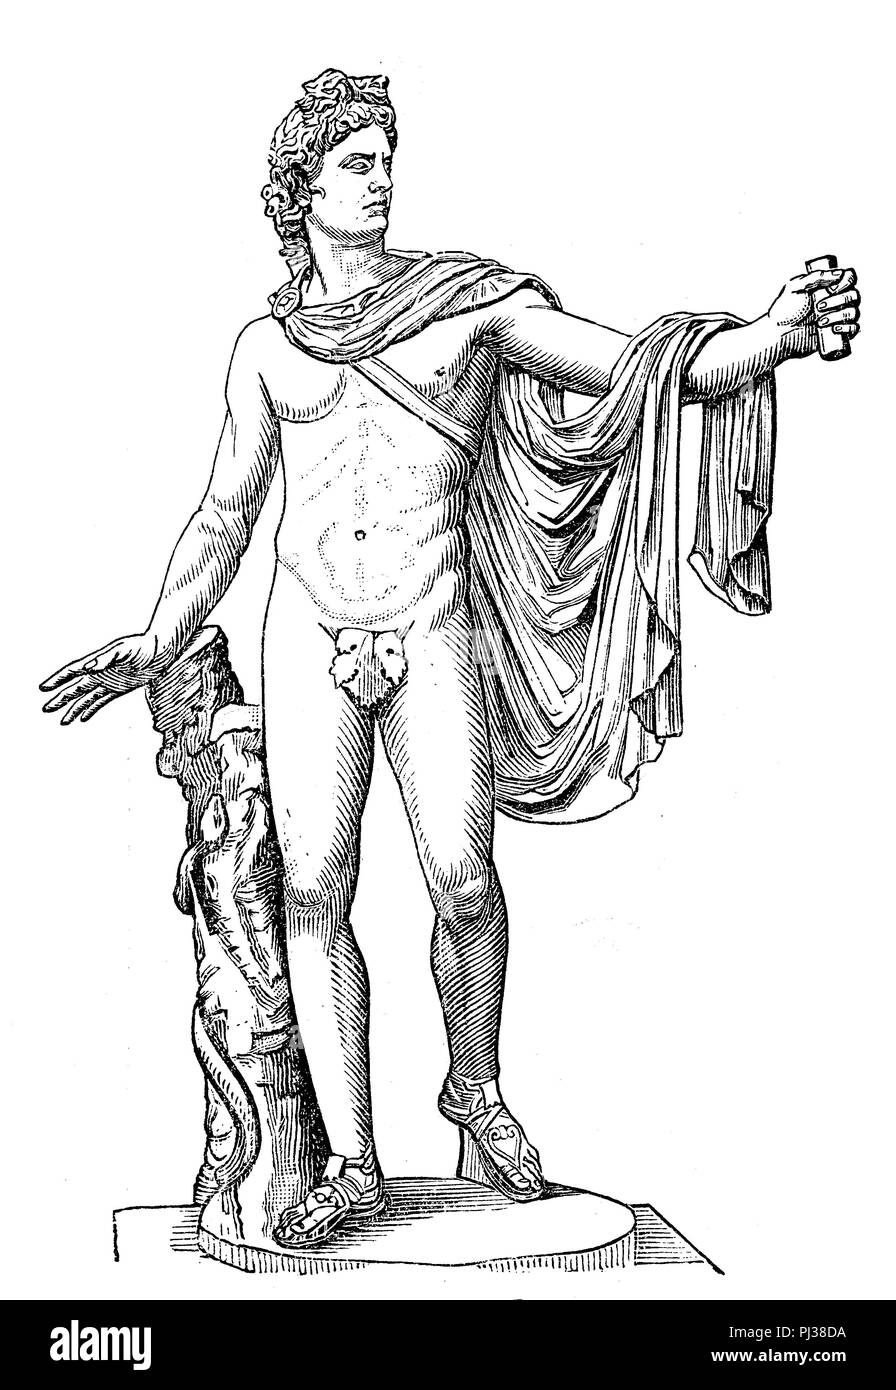 Apollo Ancient Greek God Of Light Healing And Poetry Digital Improved Reproduction An Original From The Year 1895